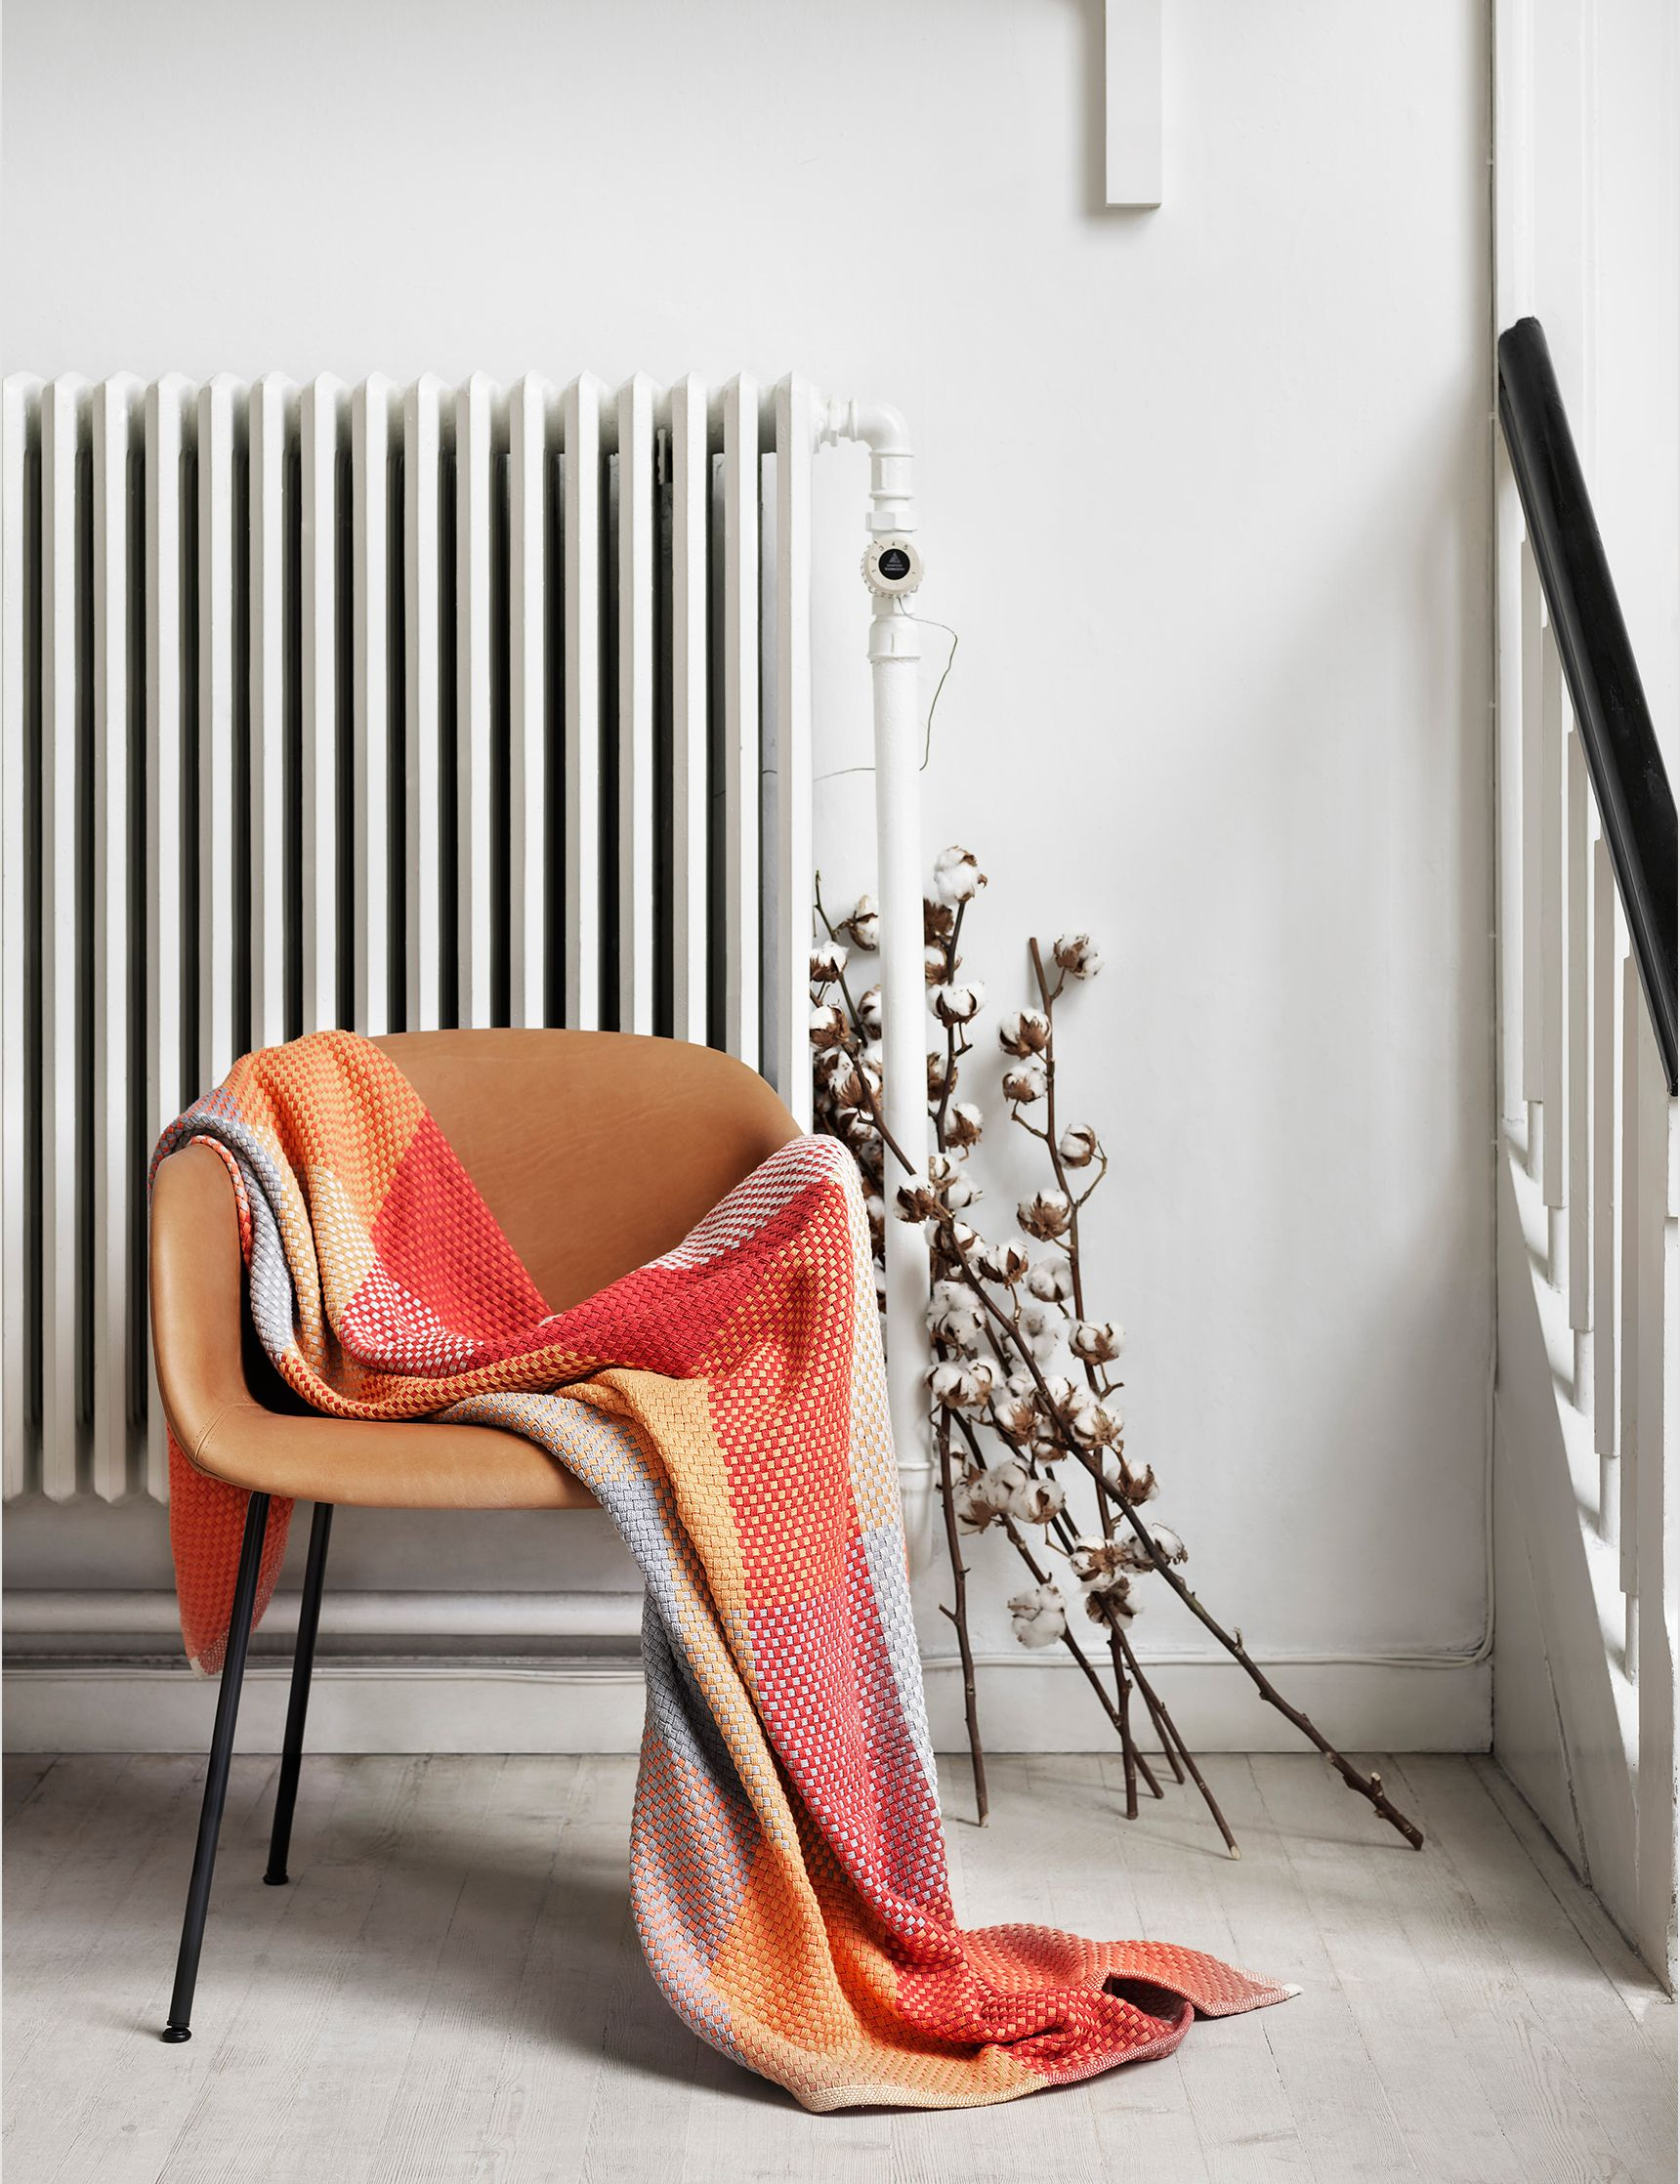 The Muuto Loom Throw Designed By Simon Key Bertman For Danish Furniture And  Lighting Company Muuto Is A Beautifully Hand Woven, Cotton Throw Thatu0027s  Great ...